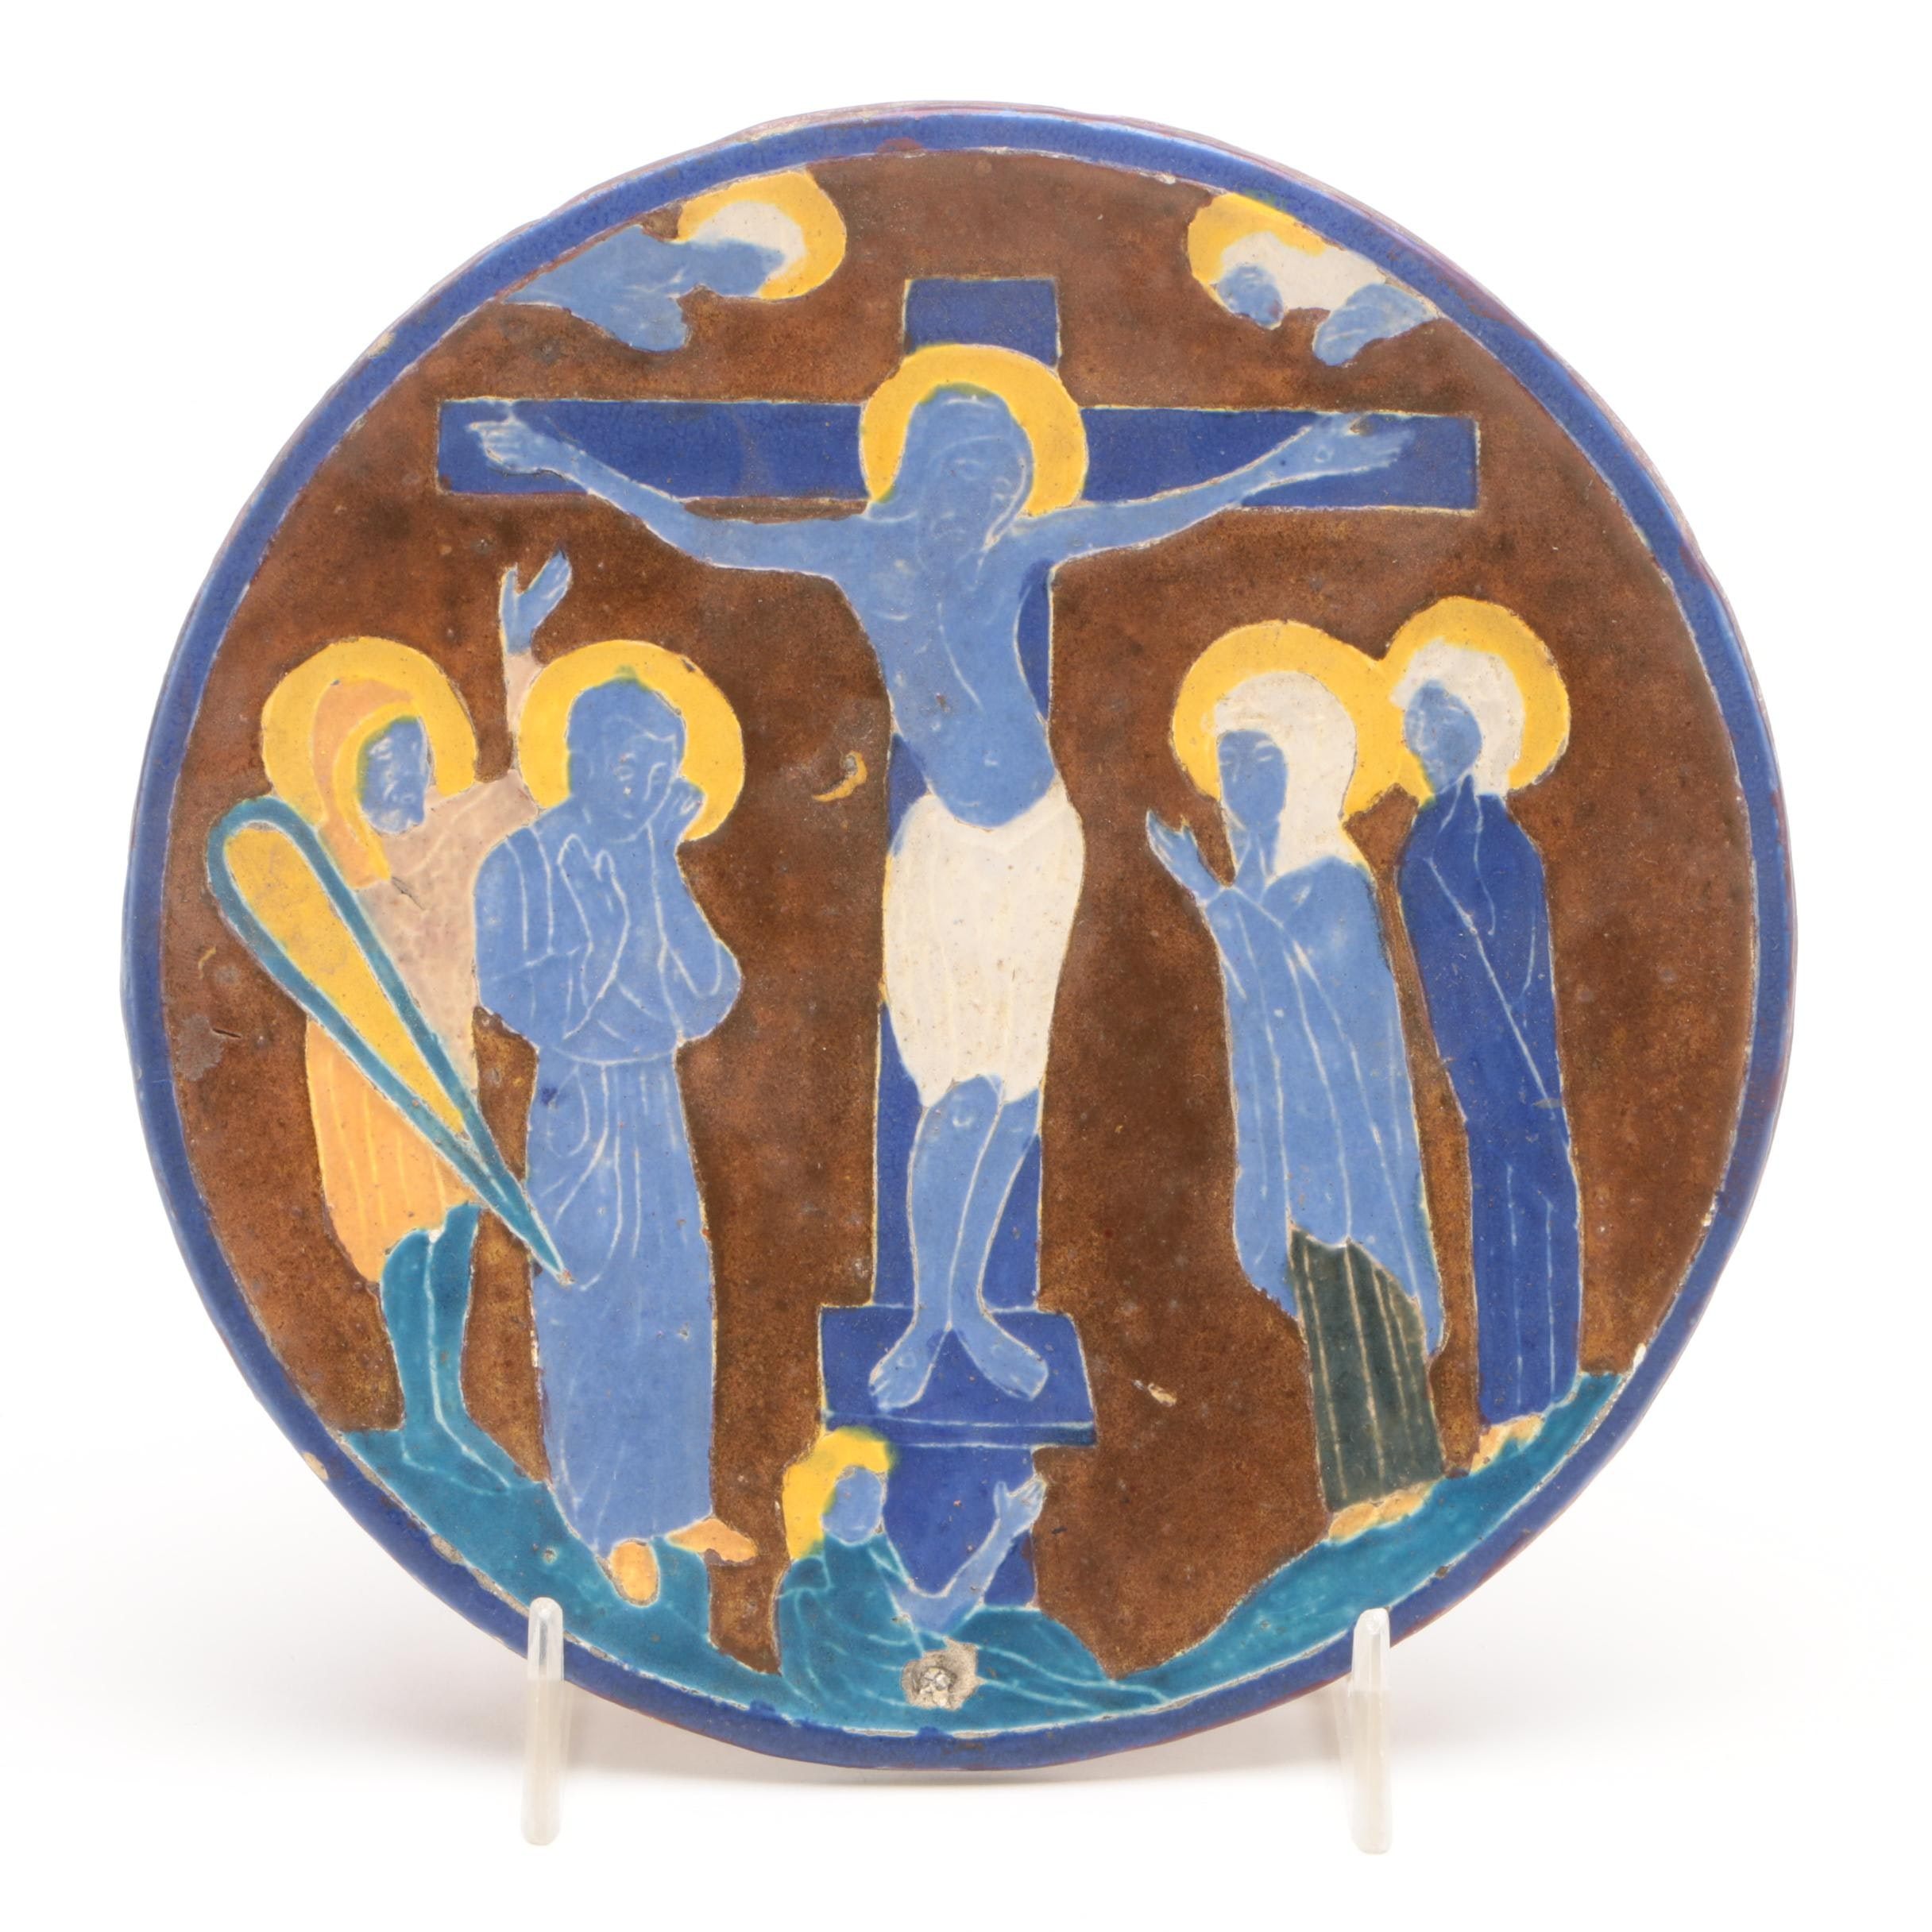 Signed Art Pottery Majolica Plate with Crucifixion Scene